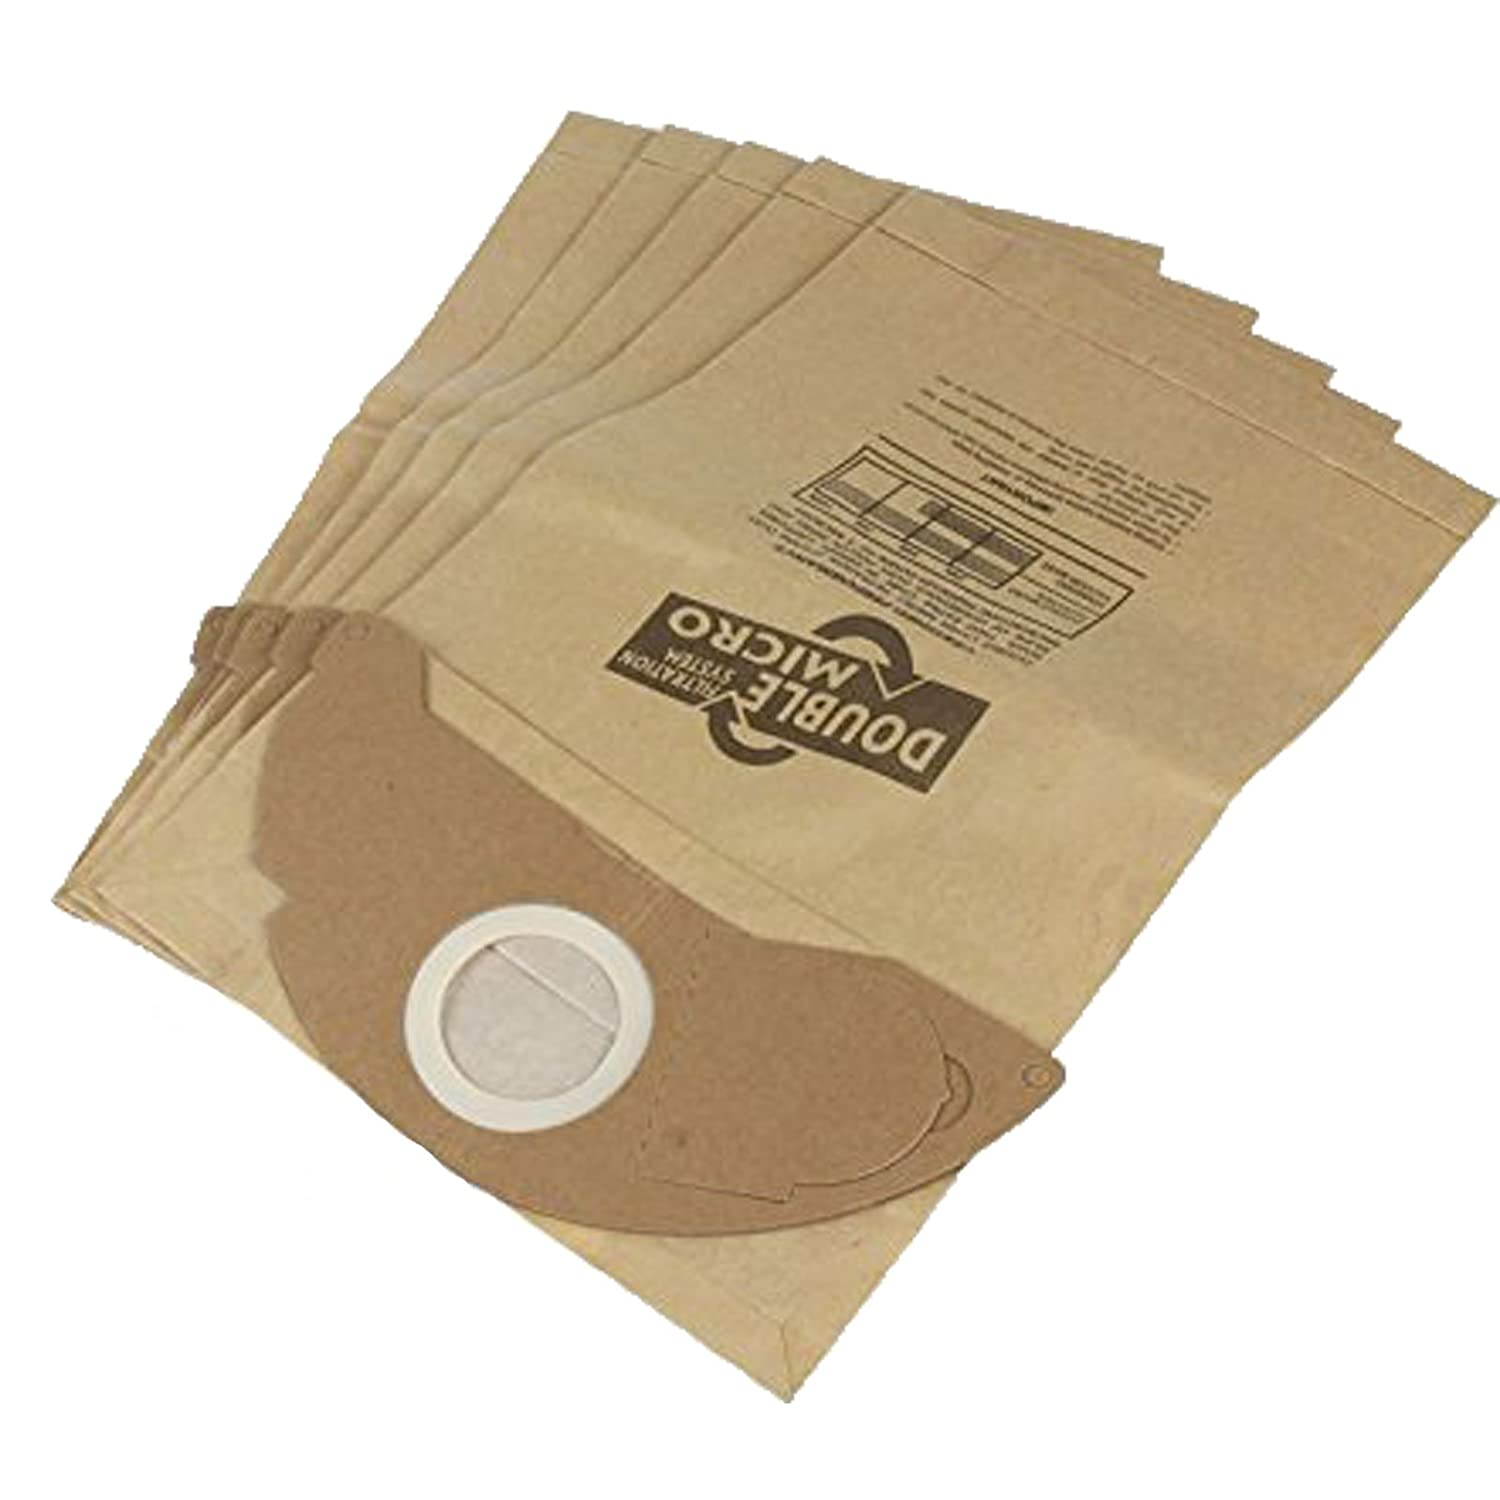 Vacspare 5 Double Micro Paper Dust Bags Premium Quality Cartridge Filter For Karcher MV2 Wet /& Dry Vacuum Cleaners